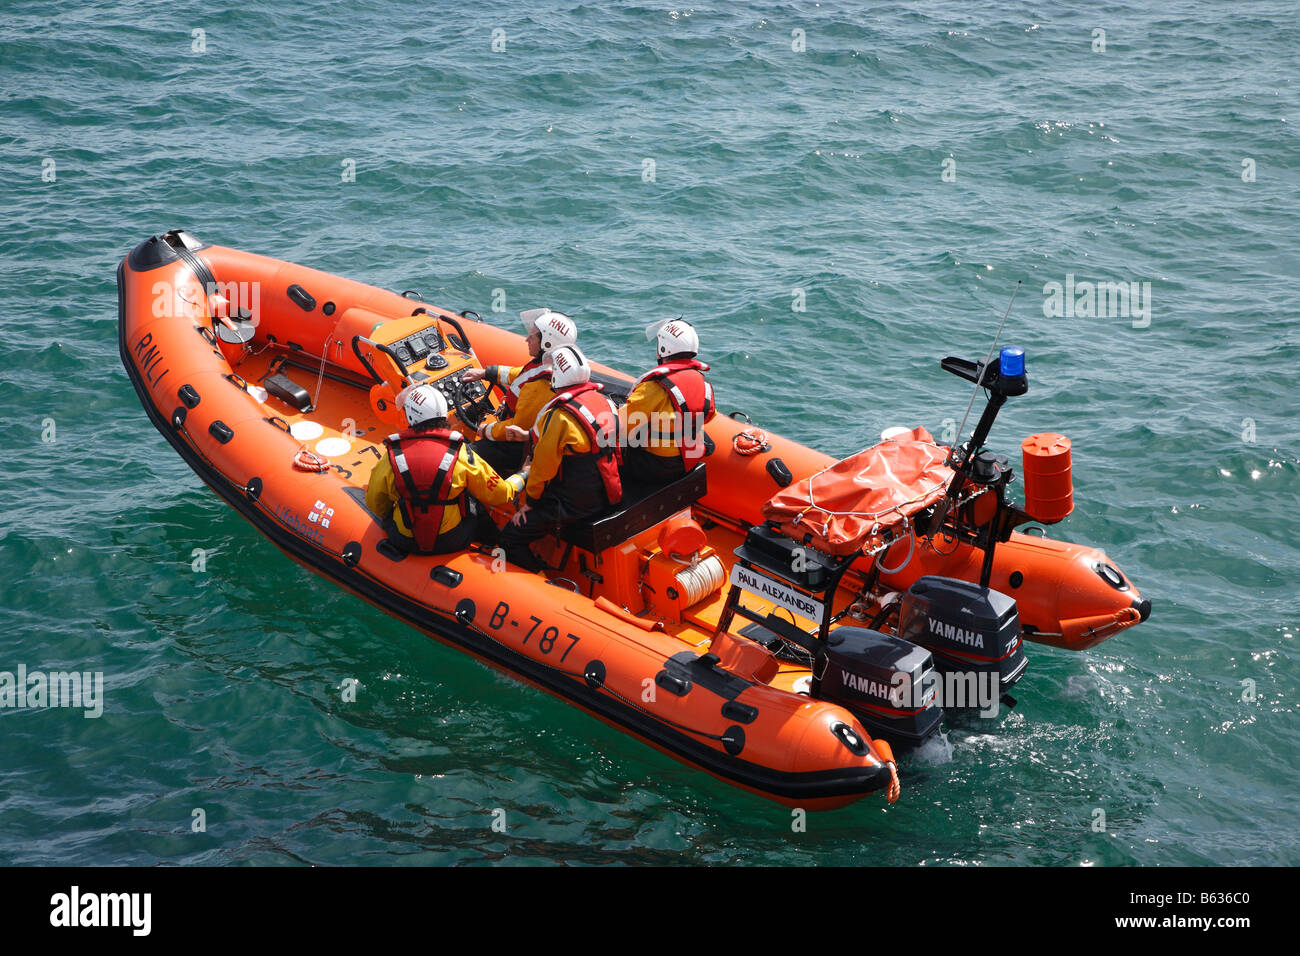 RNLI orange powerboat dingy on an exercise drill. - Stock Image